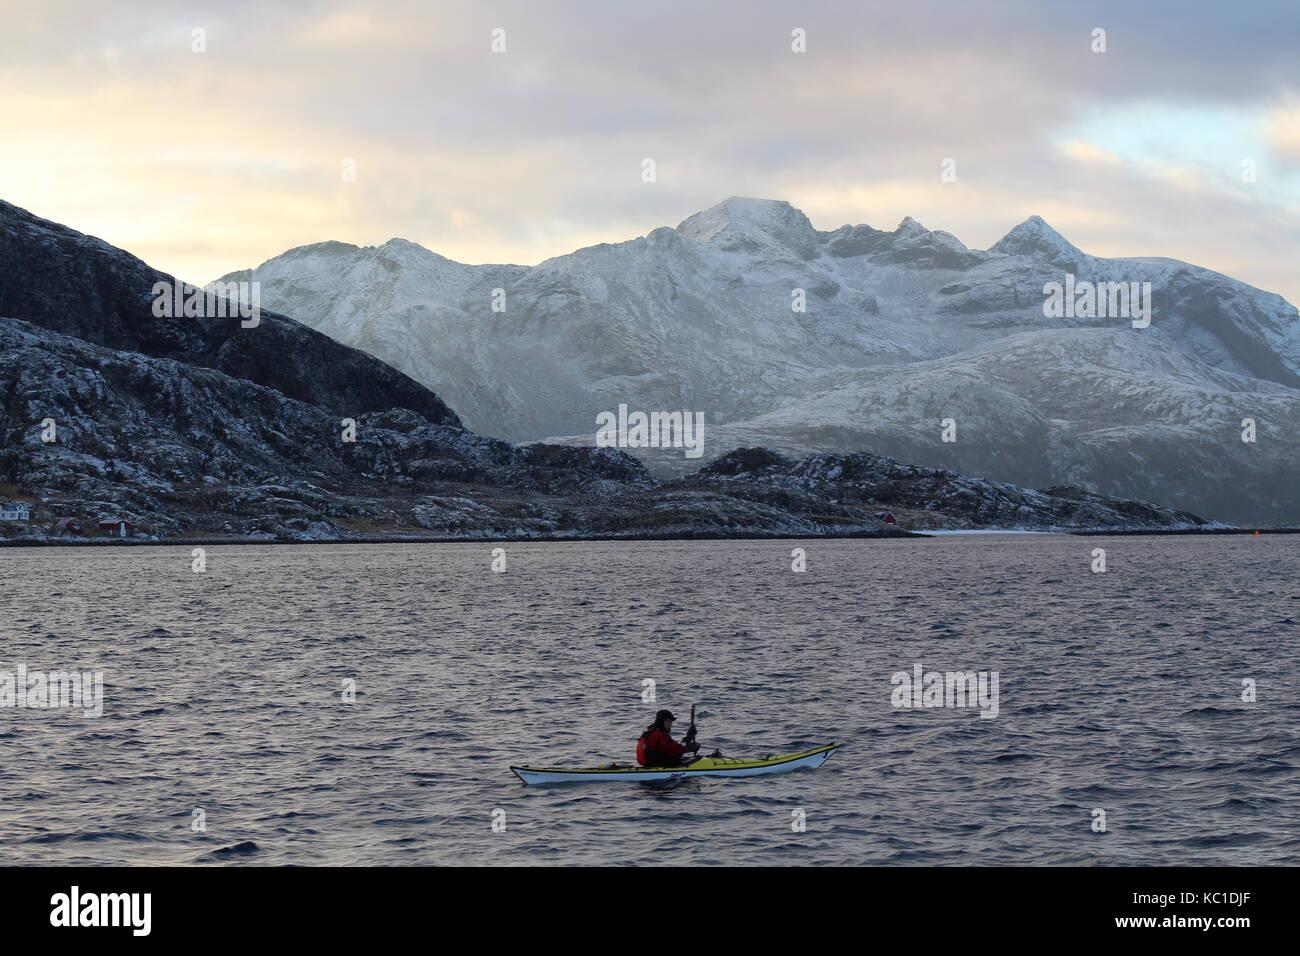 A man in a canoe in the Fjords outside Tromso - Stock Image